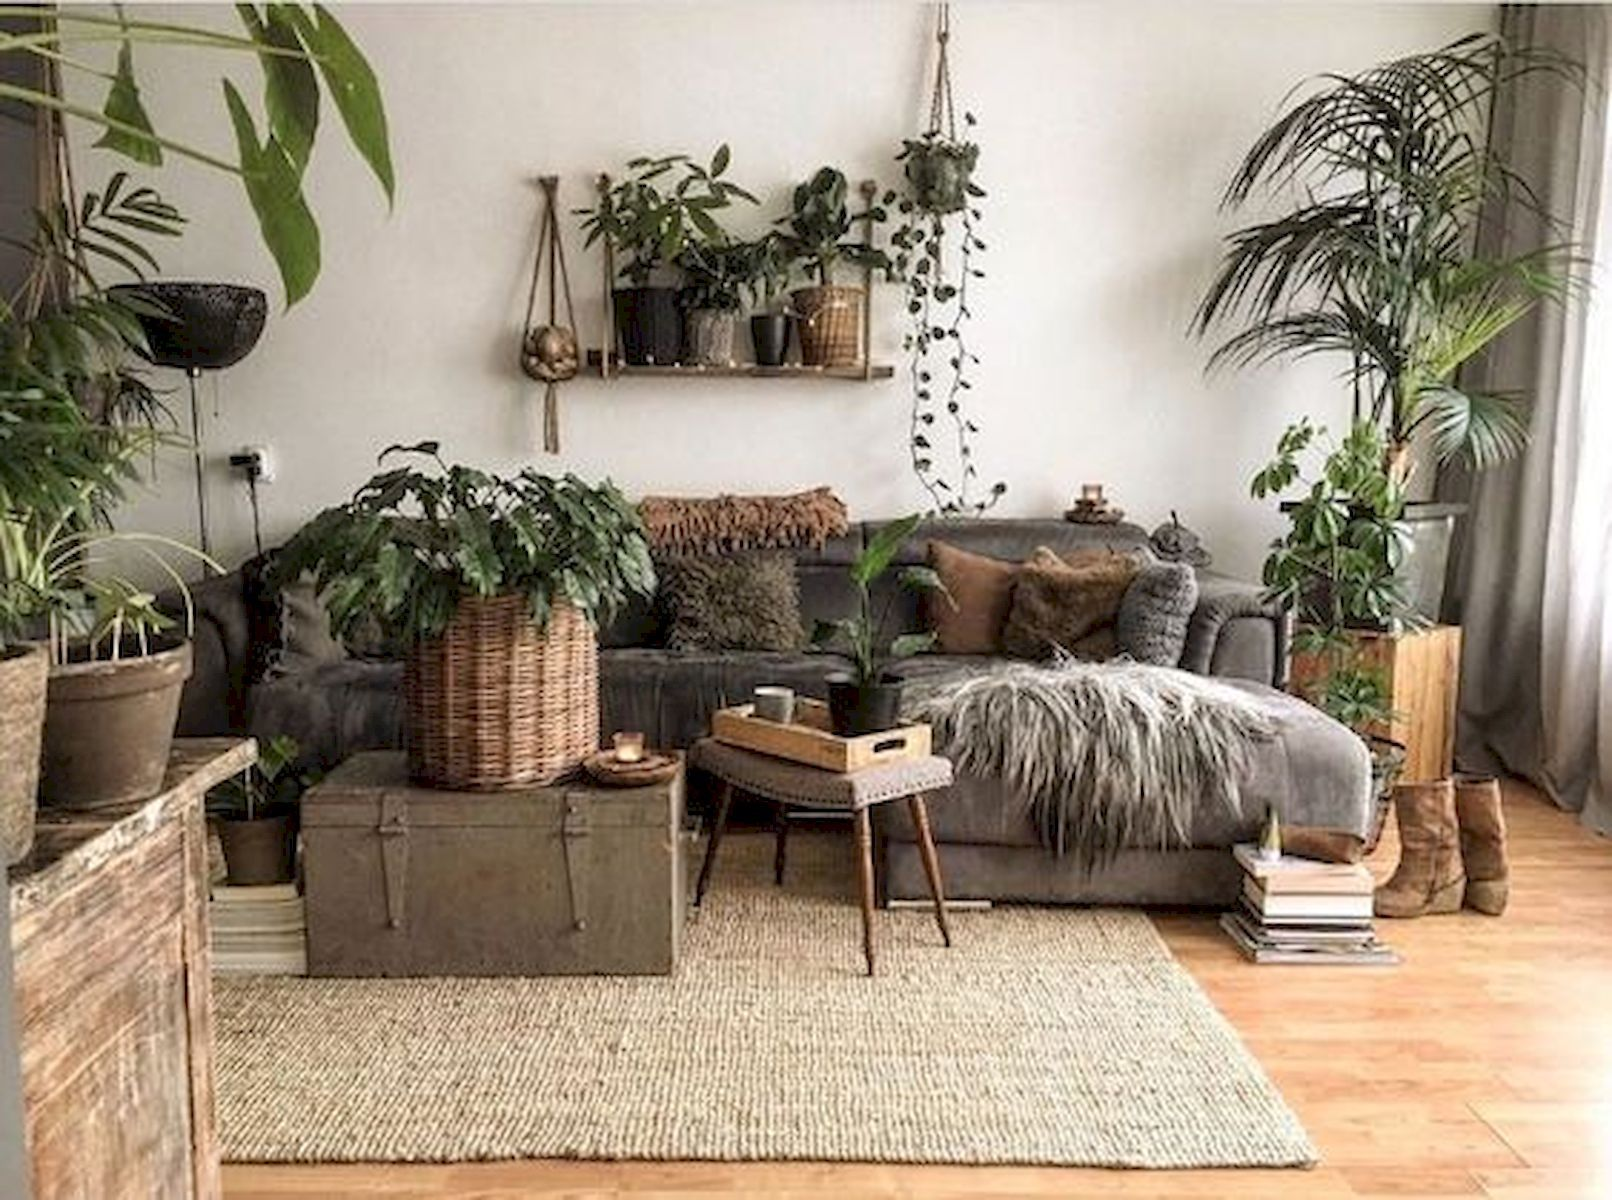 Beautiful Ways To Decorate Indoor Plant in Living Room images